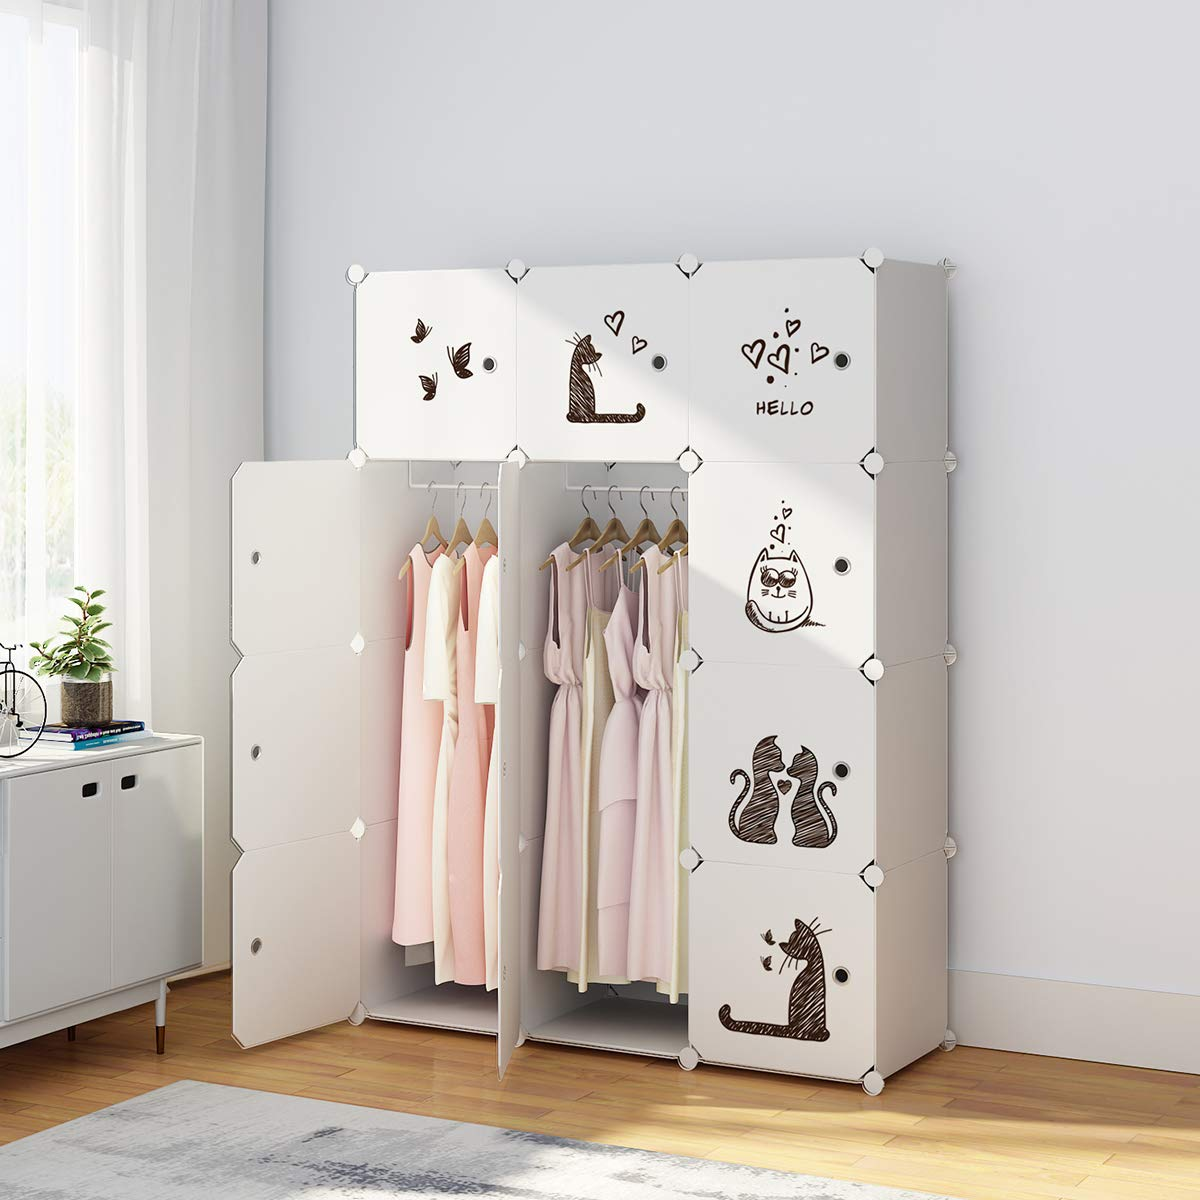 KOUSI Portable Clothes Closet Wardrobe Bedroom Armoire Dresser Cube Storage Organizer, Capacious & Custom-RB-CAT (6 Cubes 2 Hanging Clothes)